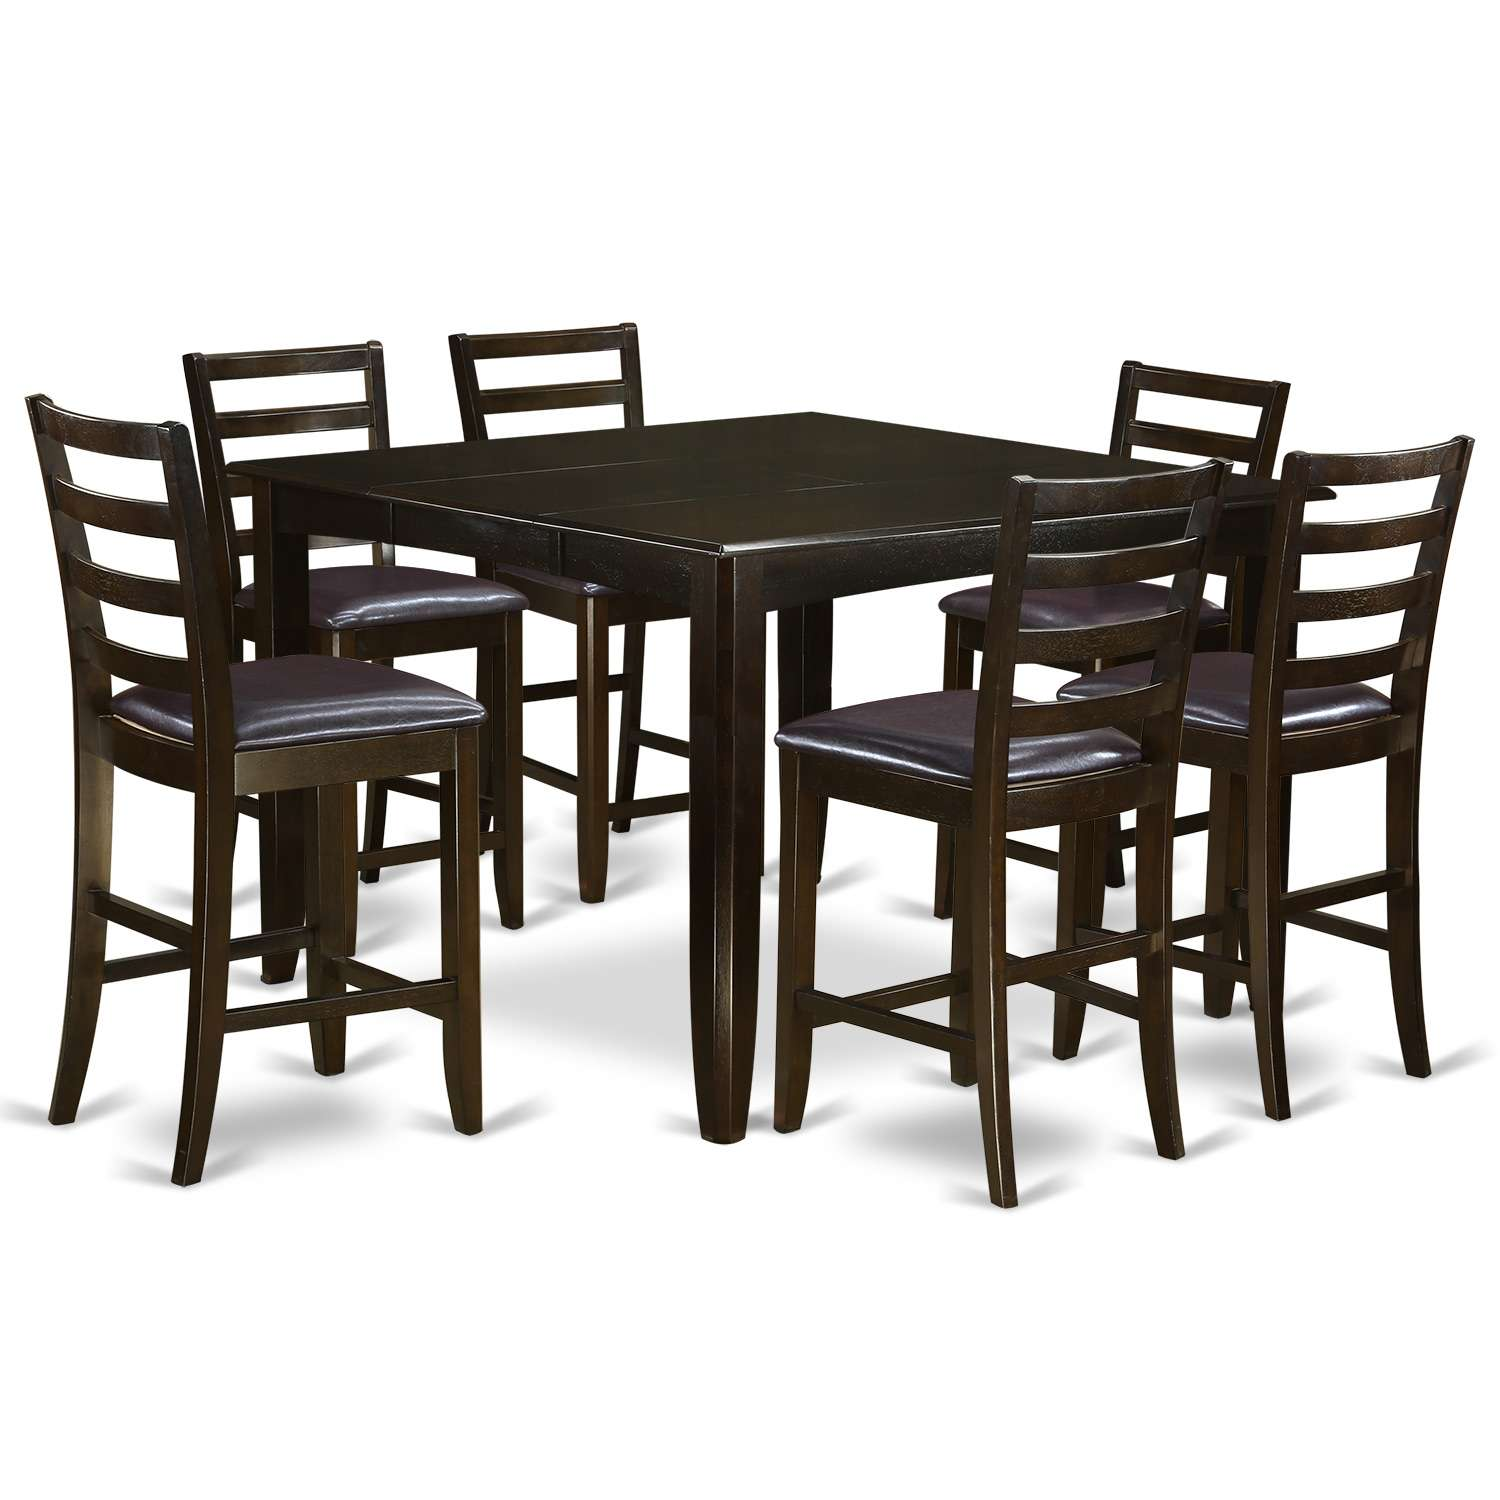 Fairwinds 9 Piece Pub Table Set   Square Pub Table And 8 Counter Height  Chairs